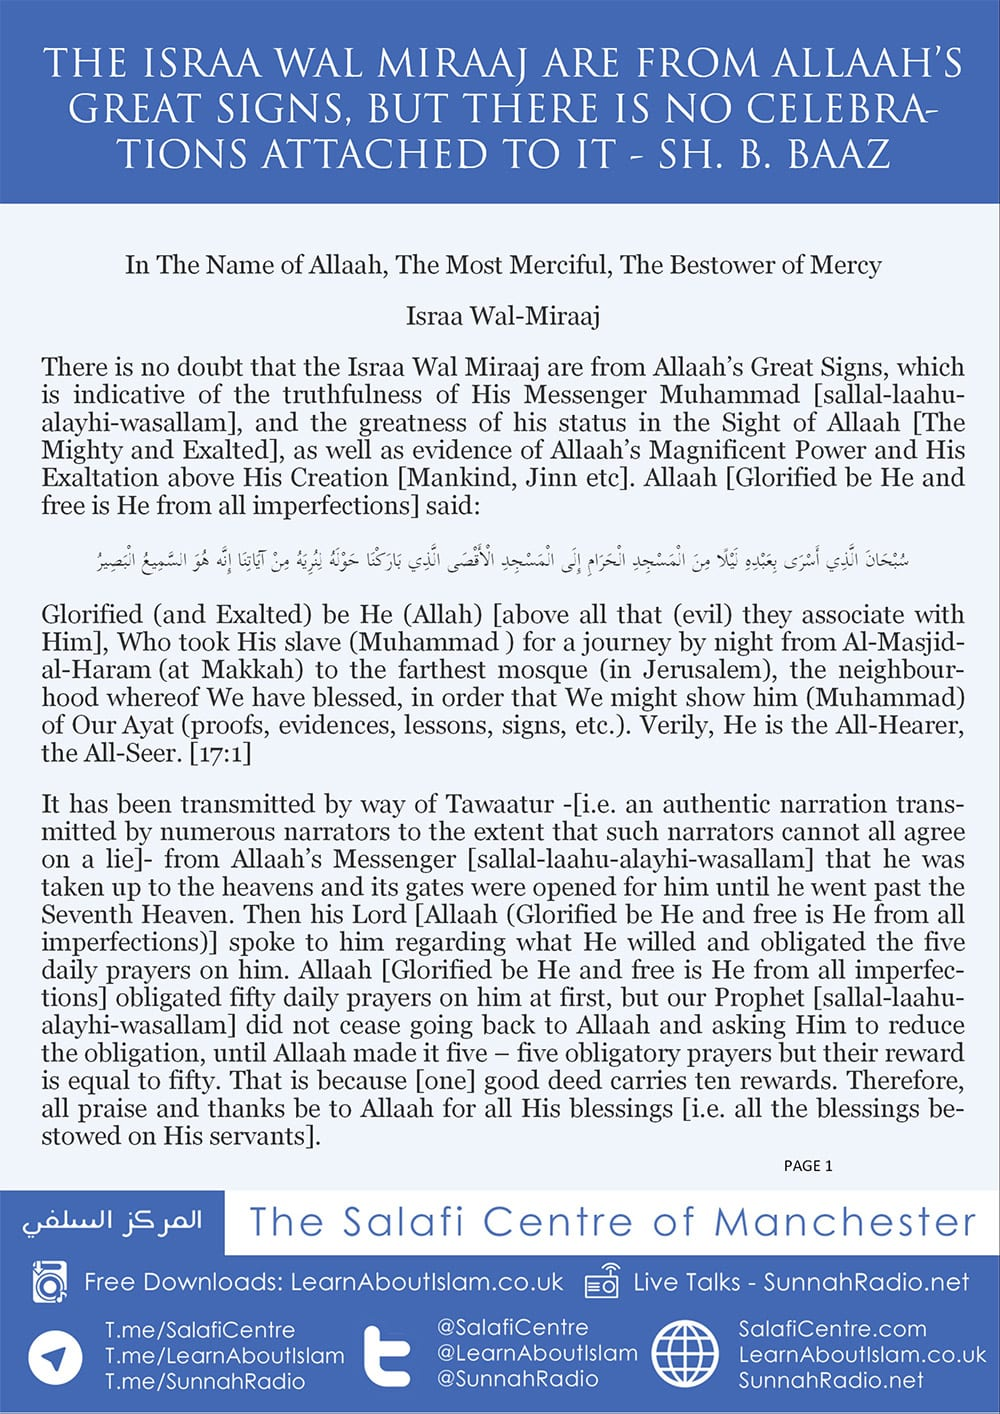 The Israa Wal Miraaj is from Allaah's Great Signs, But There Is No Celebration Attached to It – Sh. B. Baaz